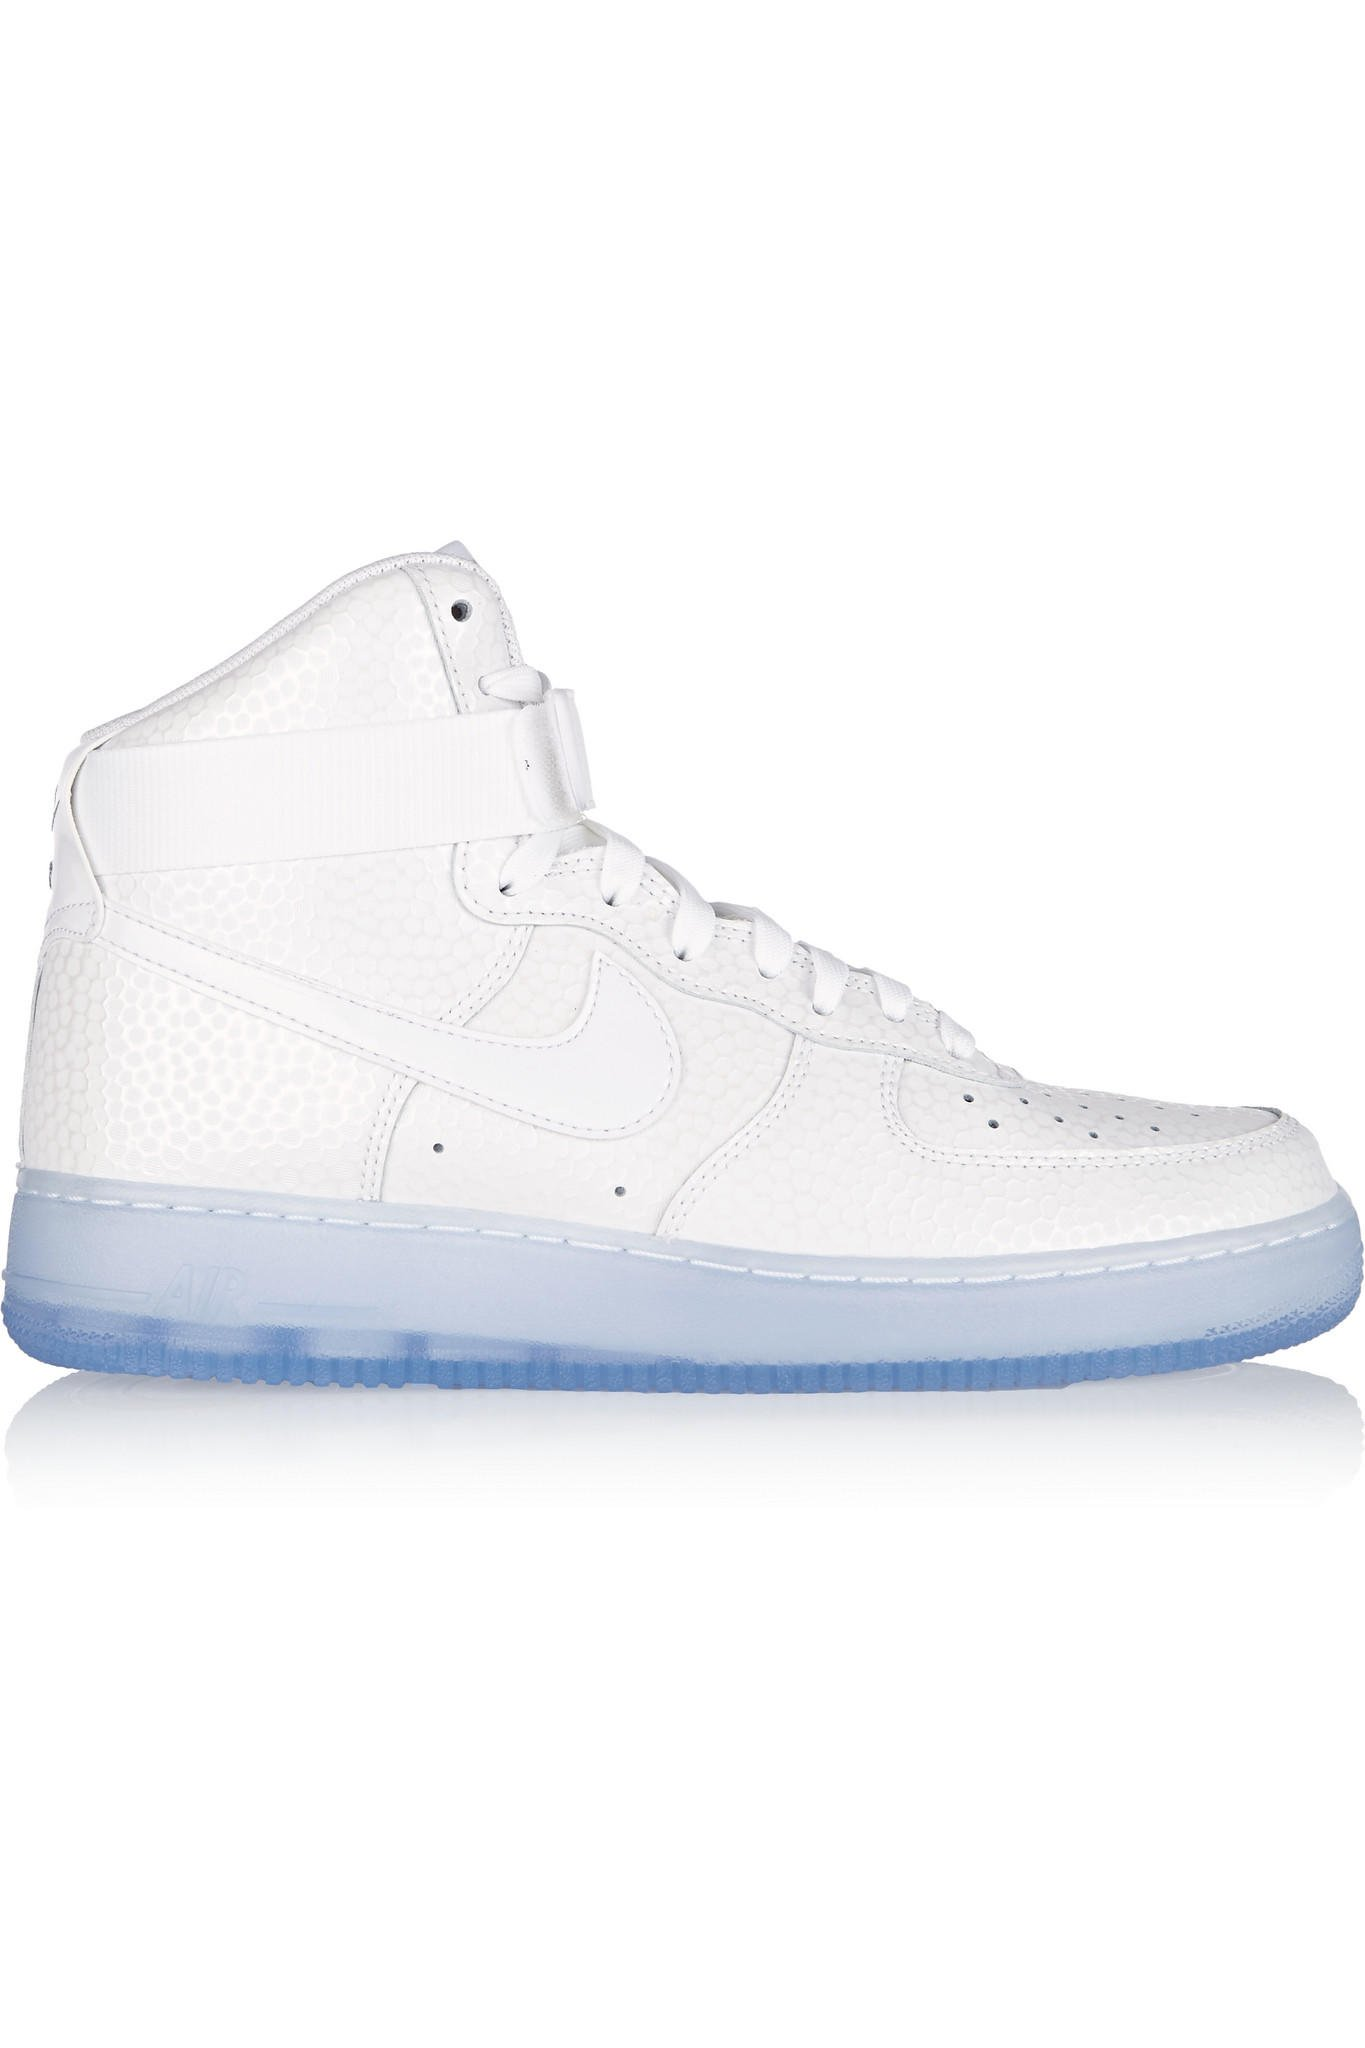 Nike - Air Force 1 Hi Premium from NET-A-PORTER a942599a7286